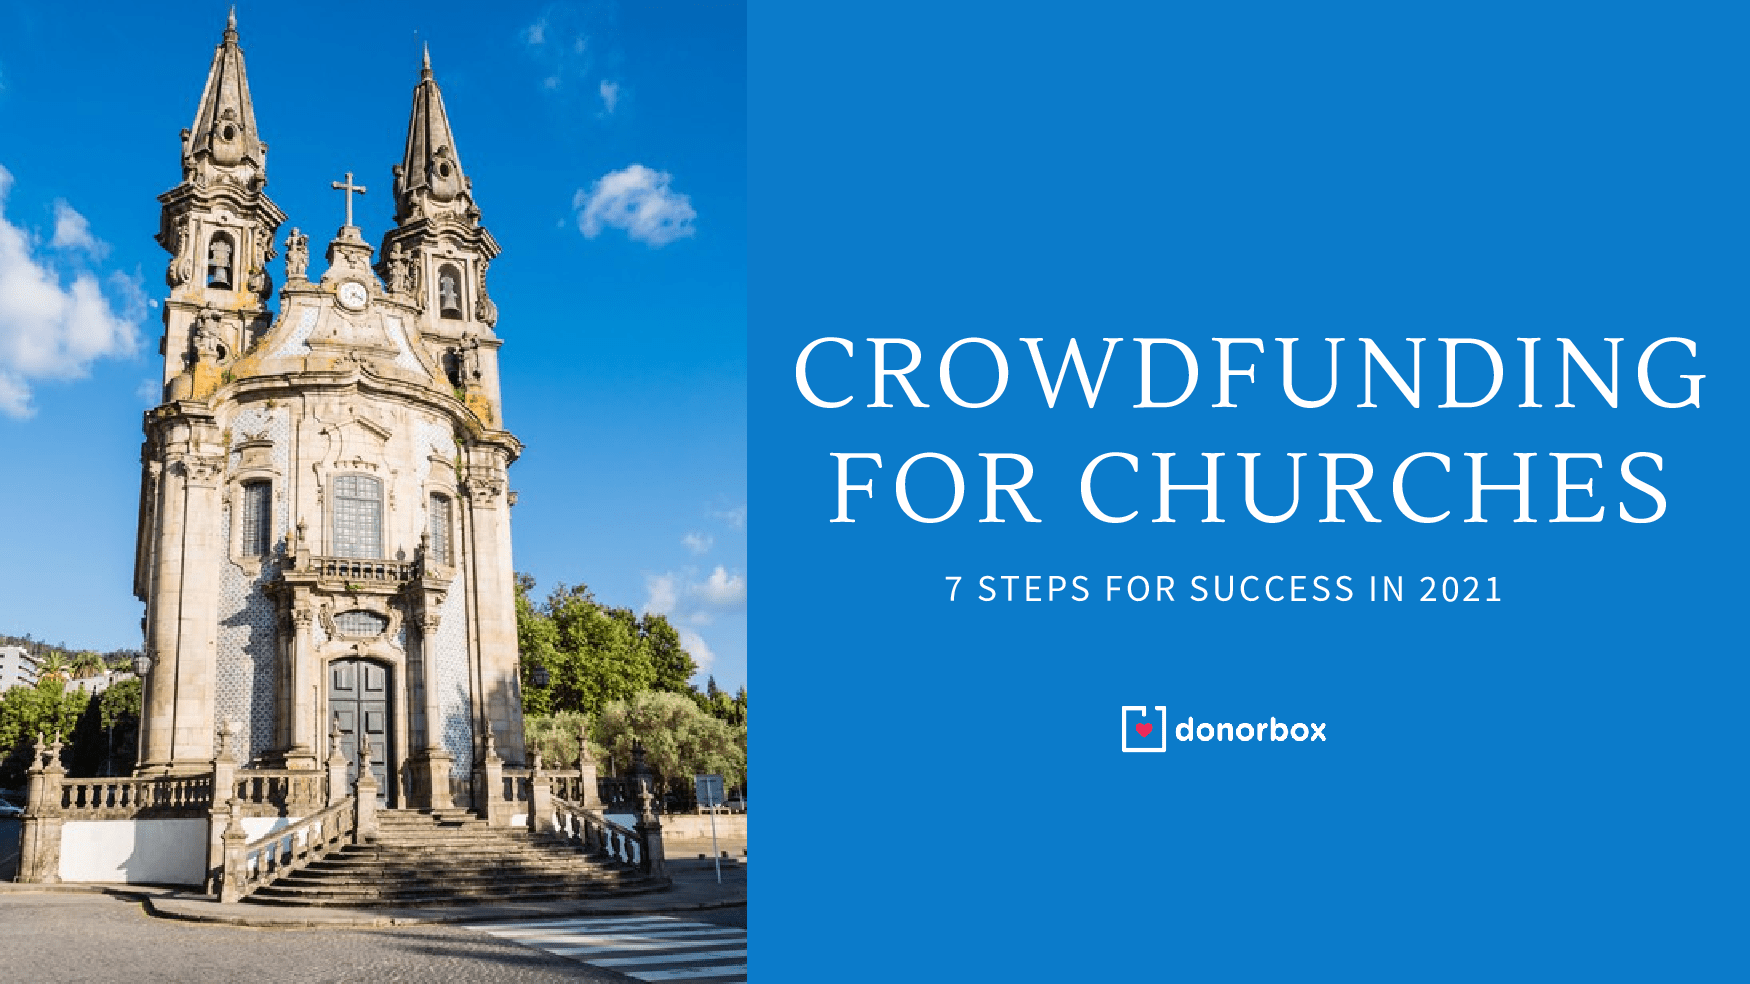 Crowdfunding for Churches   7 Steps for Success in 2021